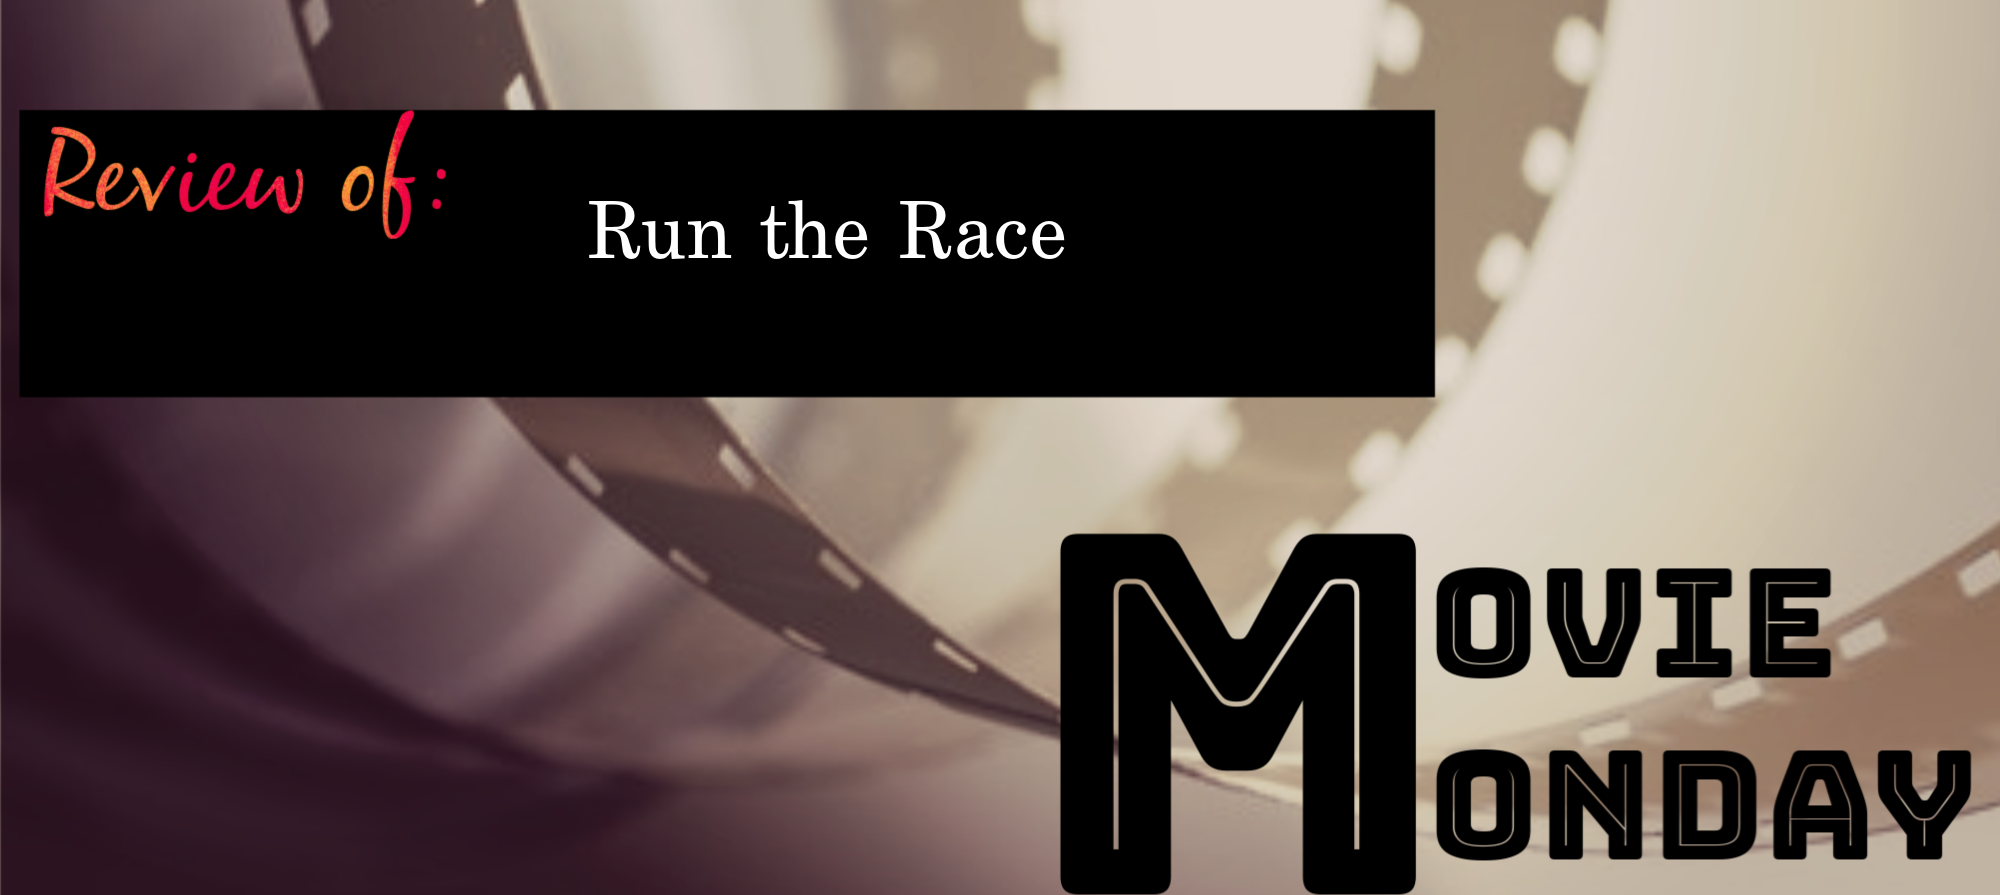 Movie Monday Run the Race.png